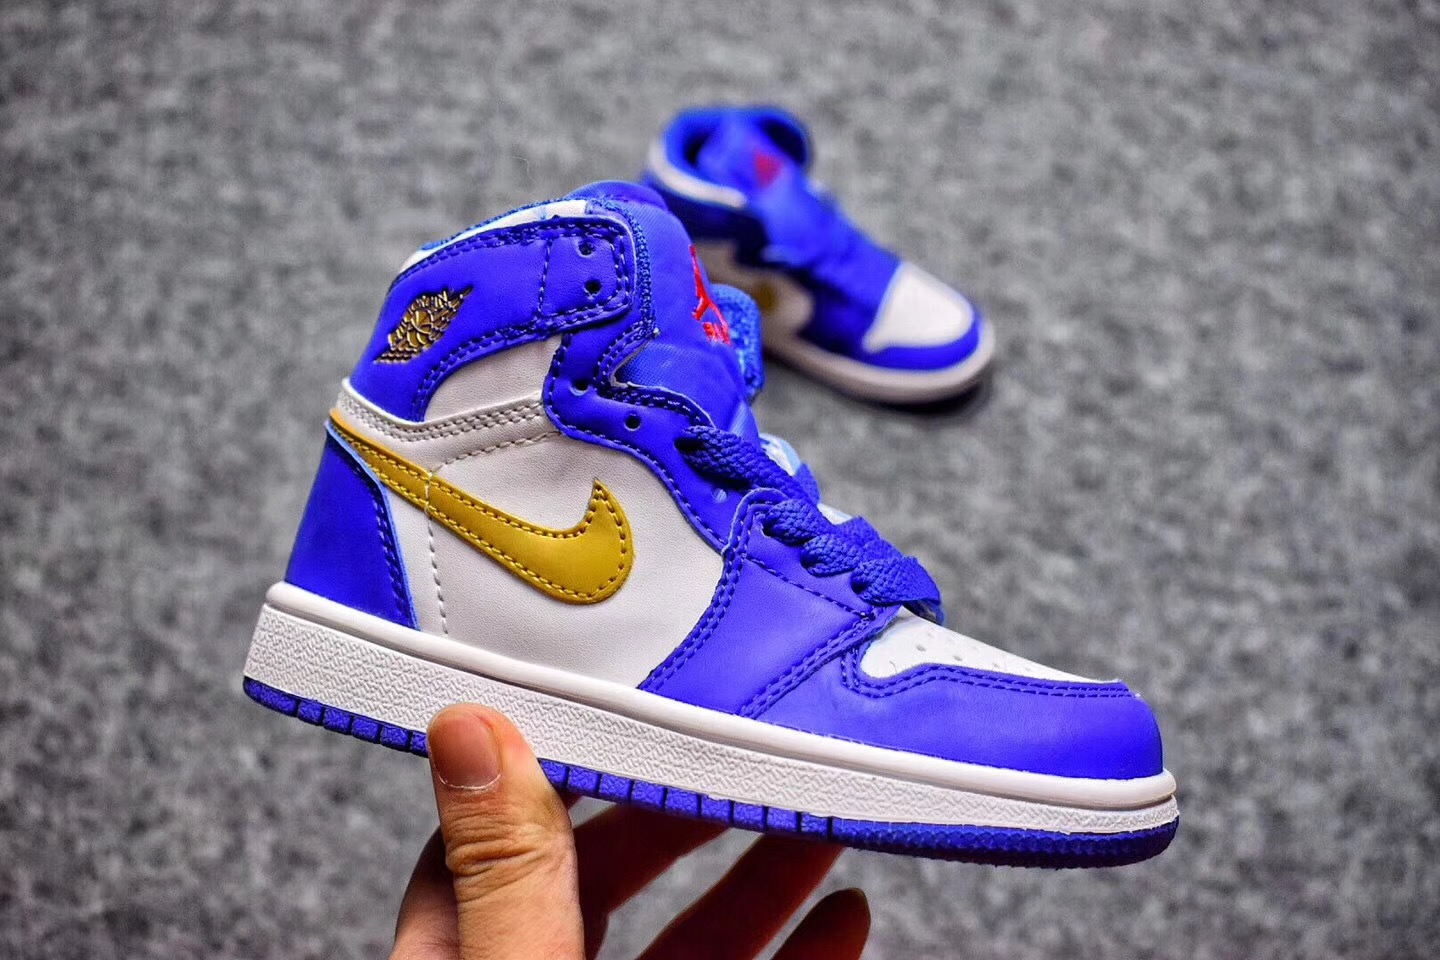 Wholesale Cheap 2017 Kids Air Jordan 1 Royal Blue Metallic Gold-White For Sale - www.wholesaleflyknit.com